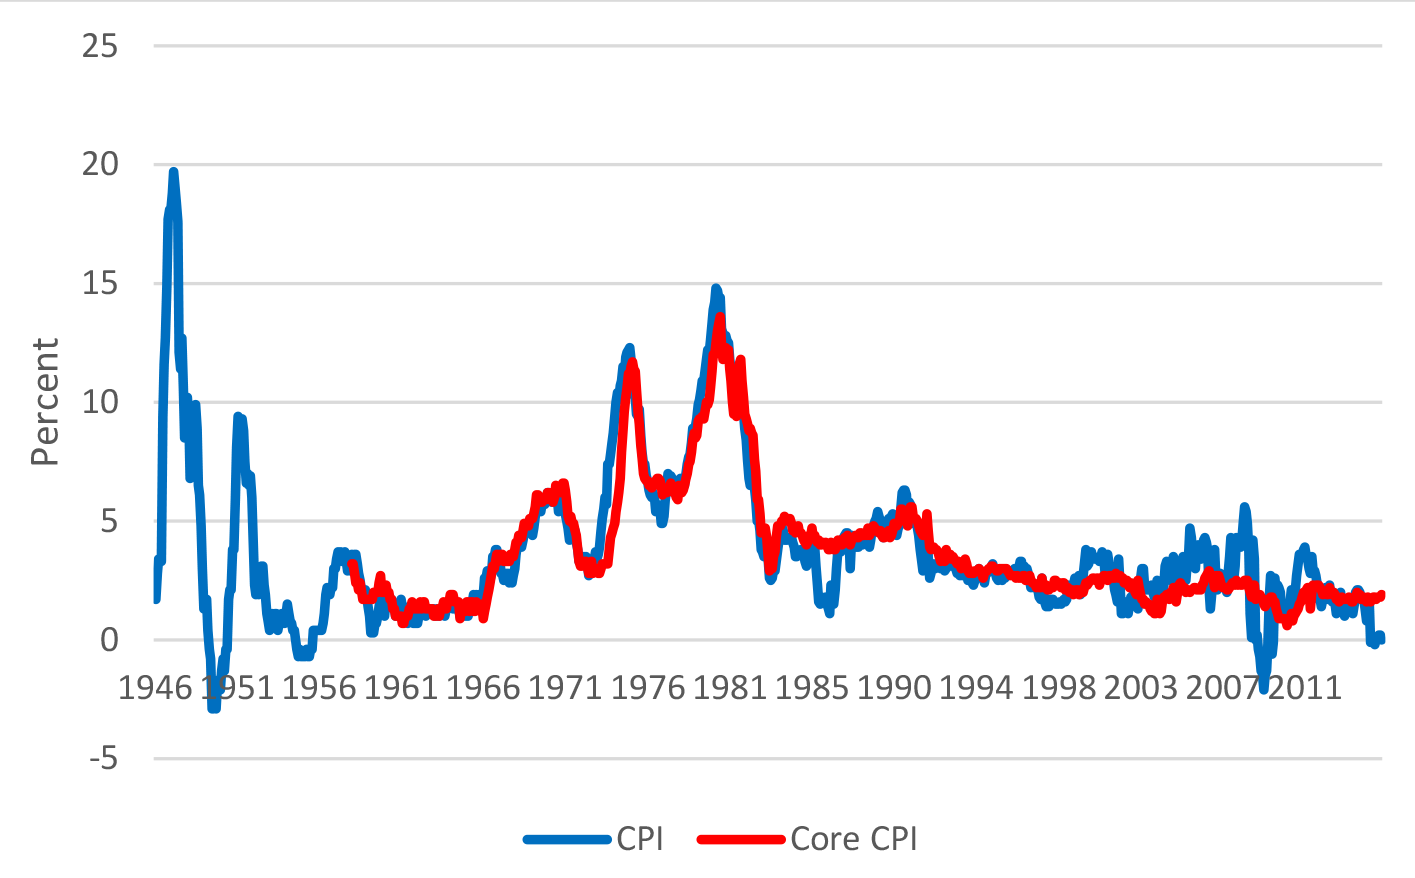 Figure 1: Percent Change in CPI and Core CPI. See accessible link for data.